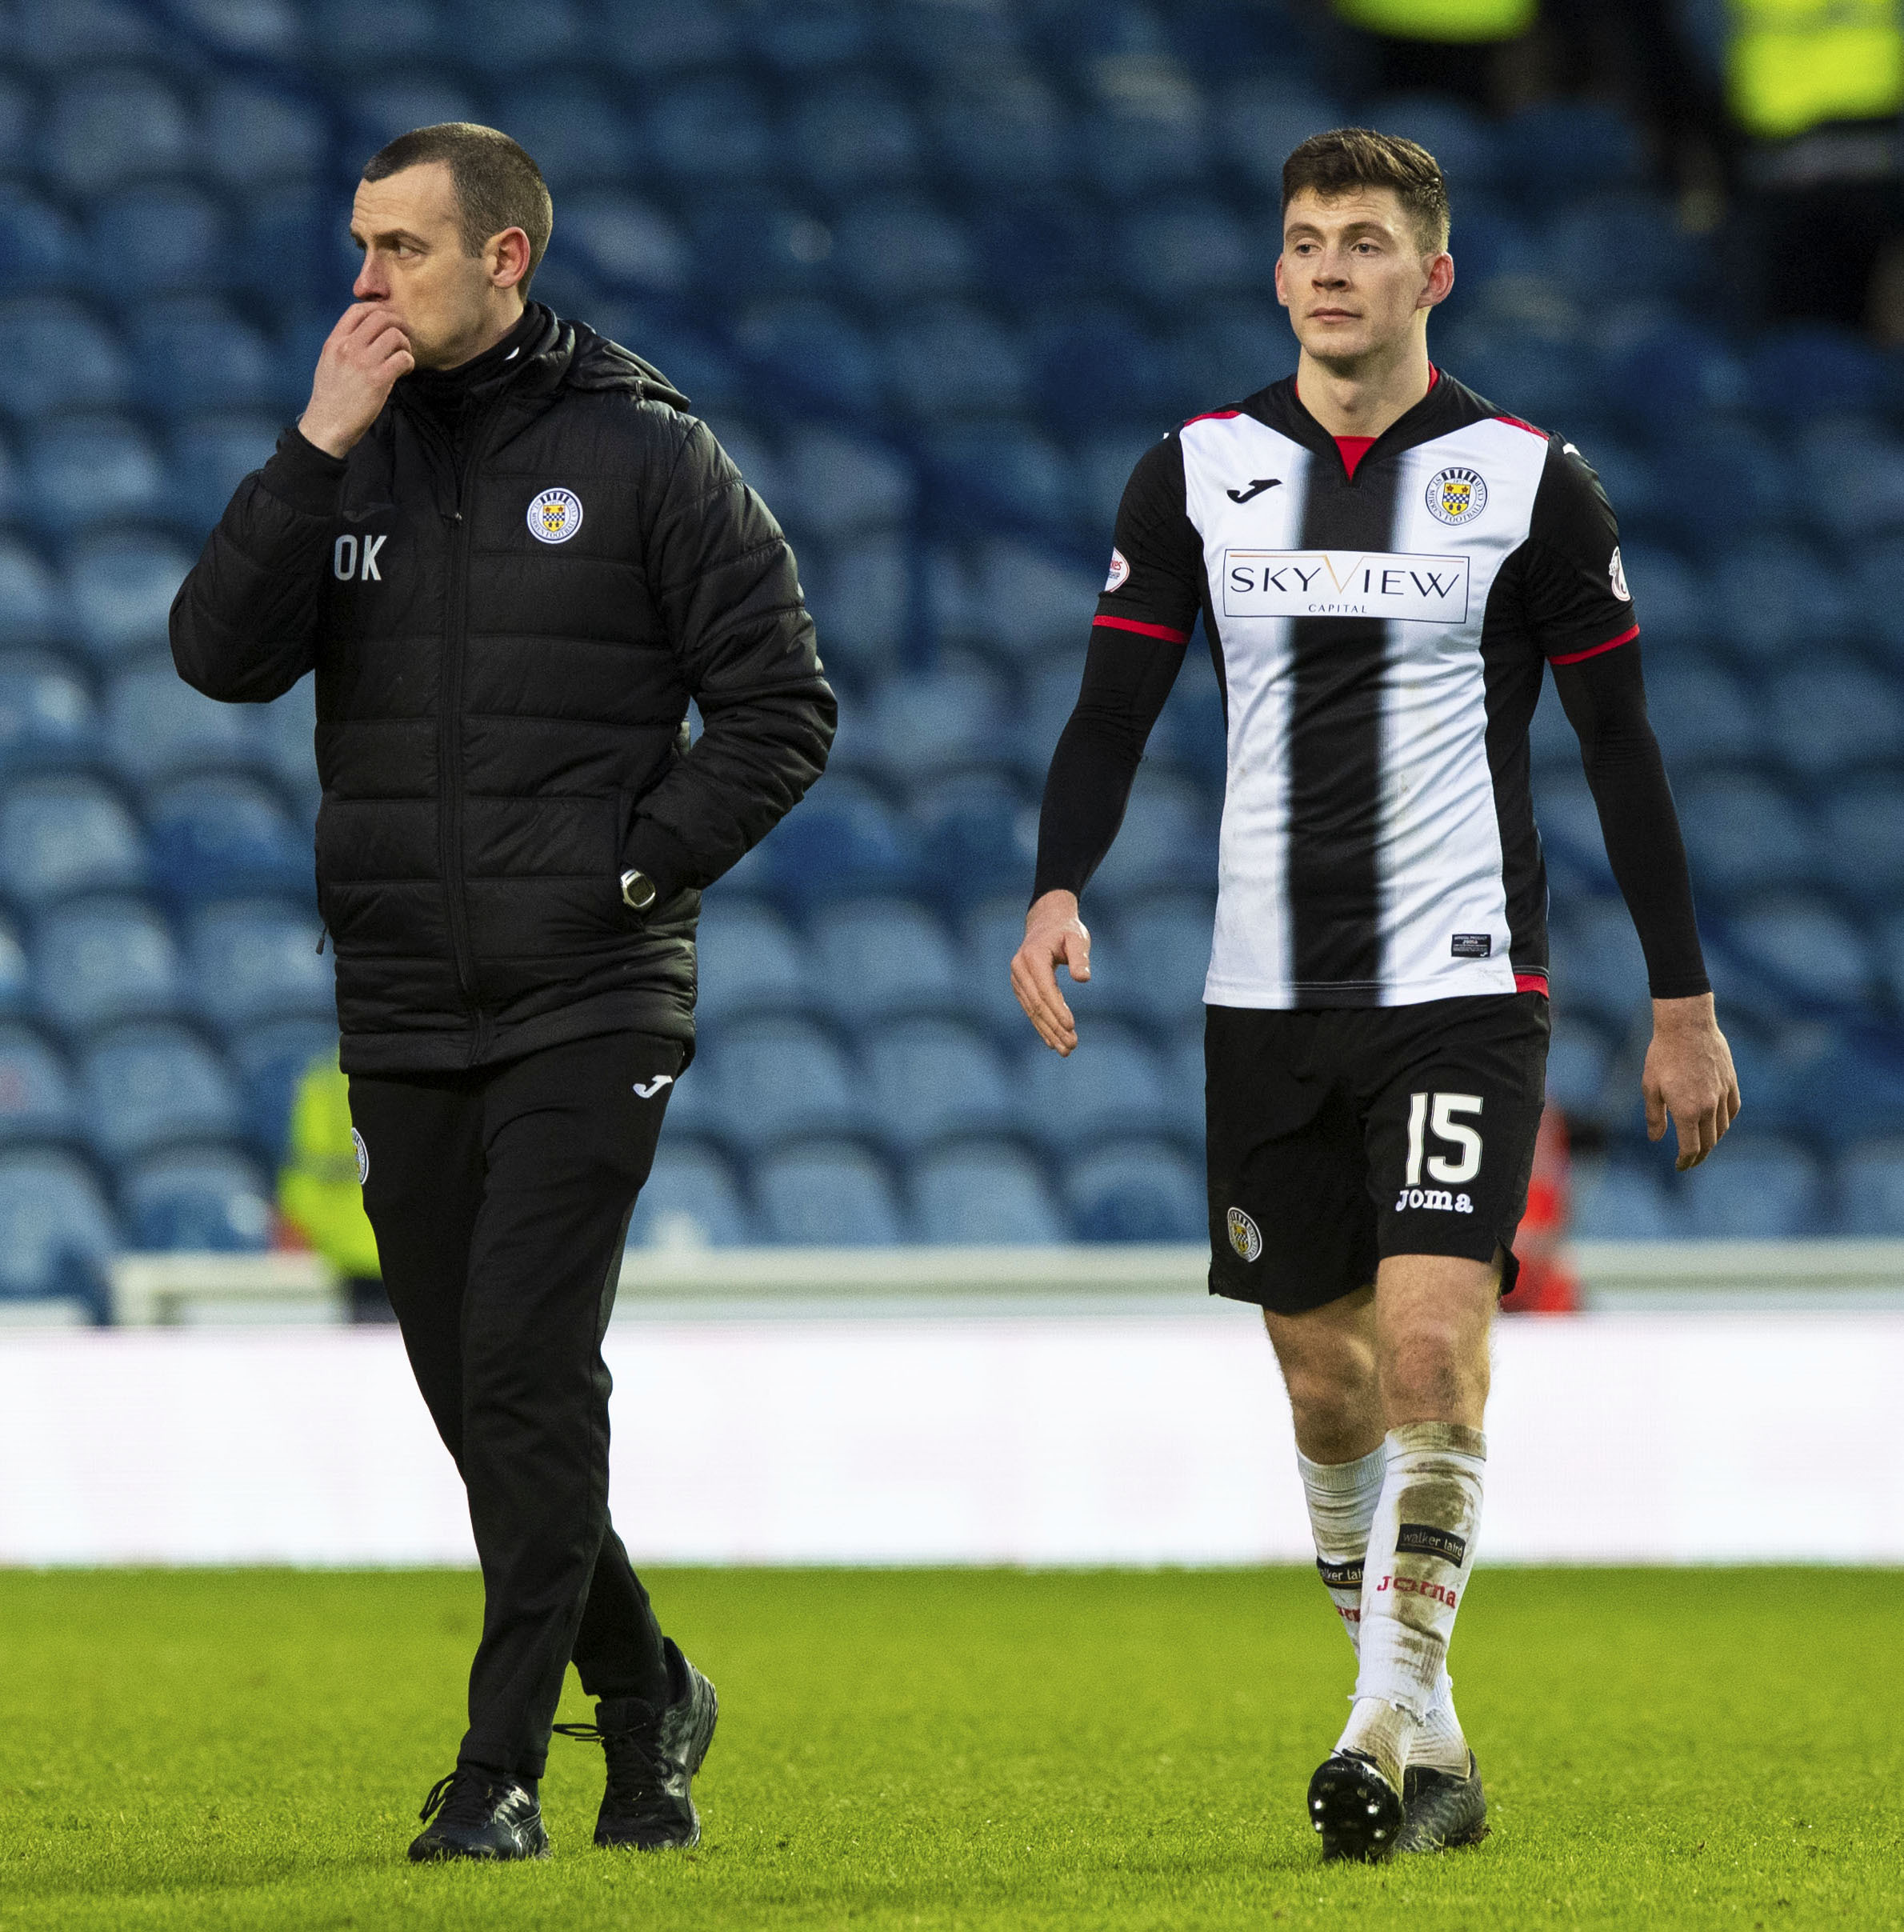 St Mirren manager Oran Kearney (L) and Jack Baird